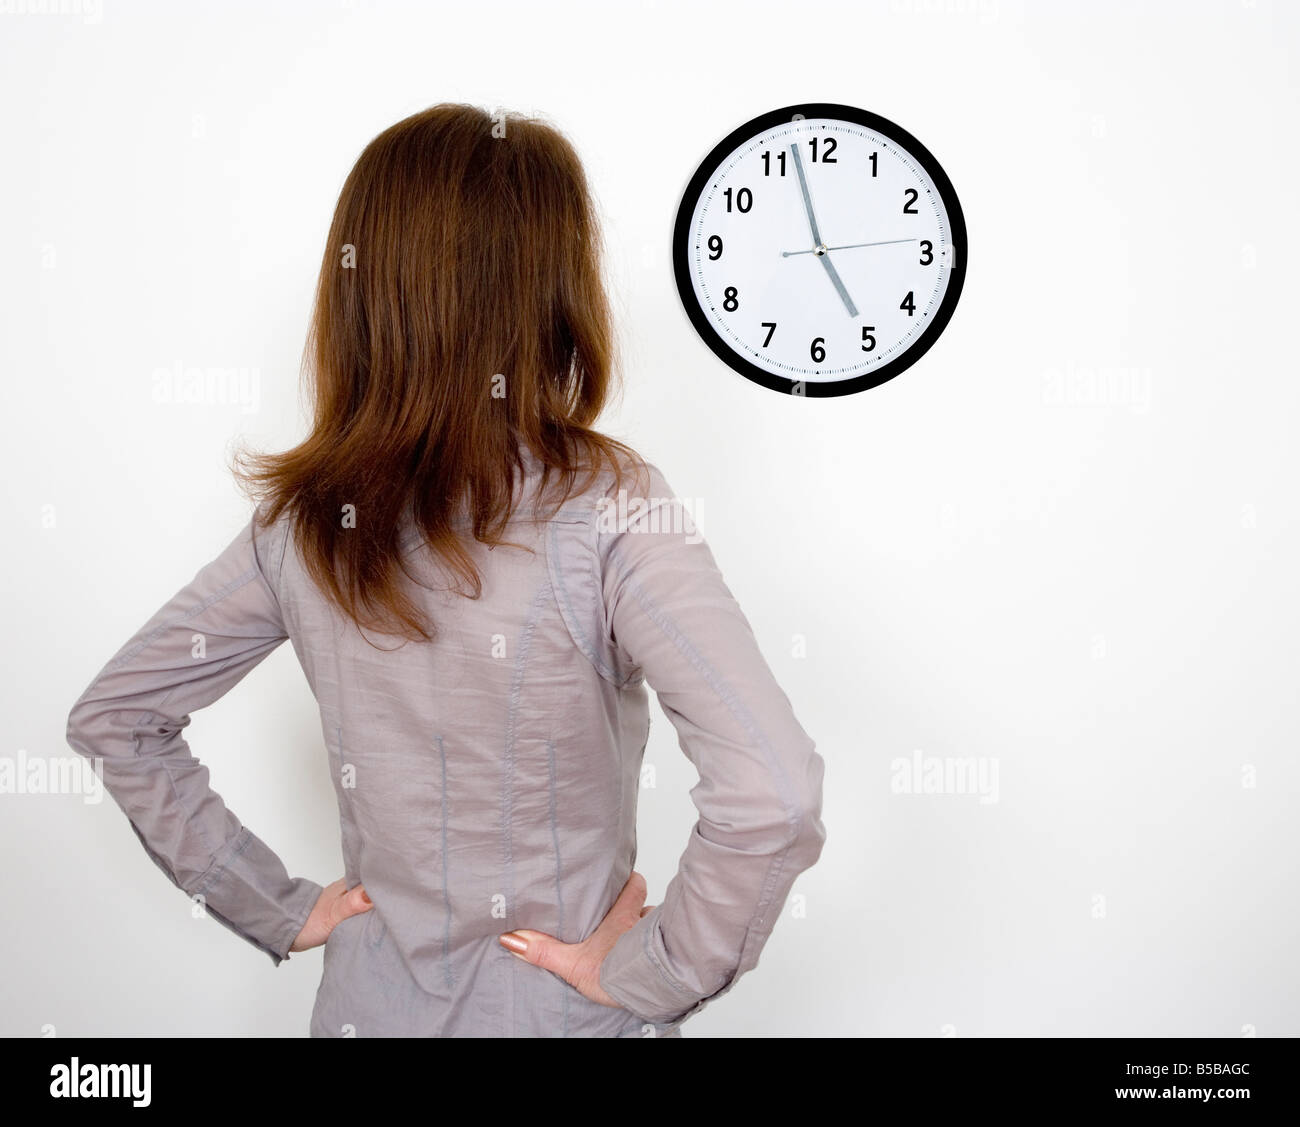 Businesswoman clock watching in office - Stock Image